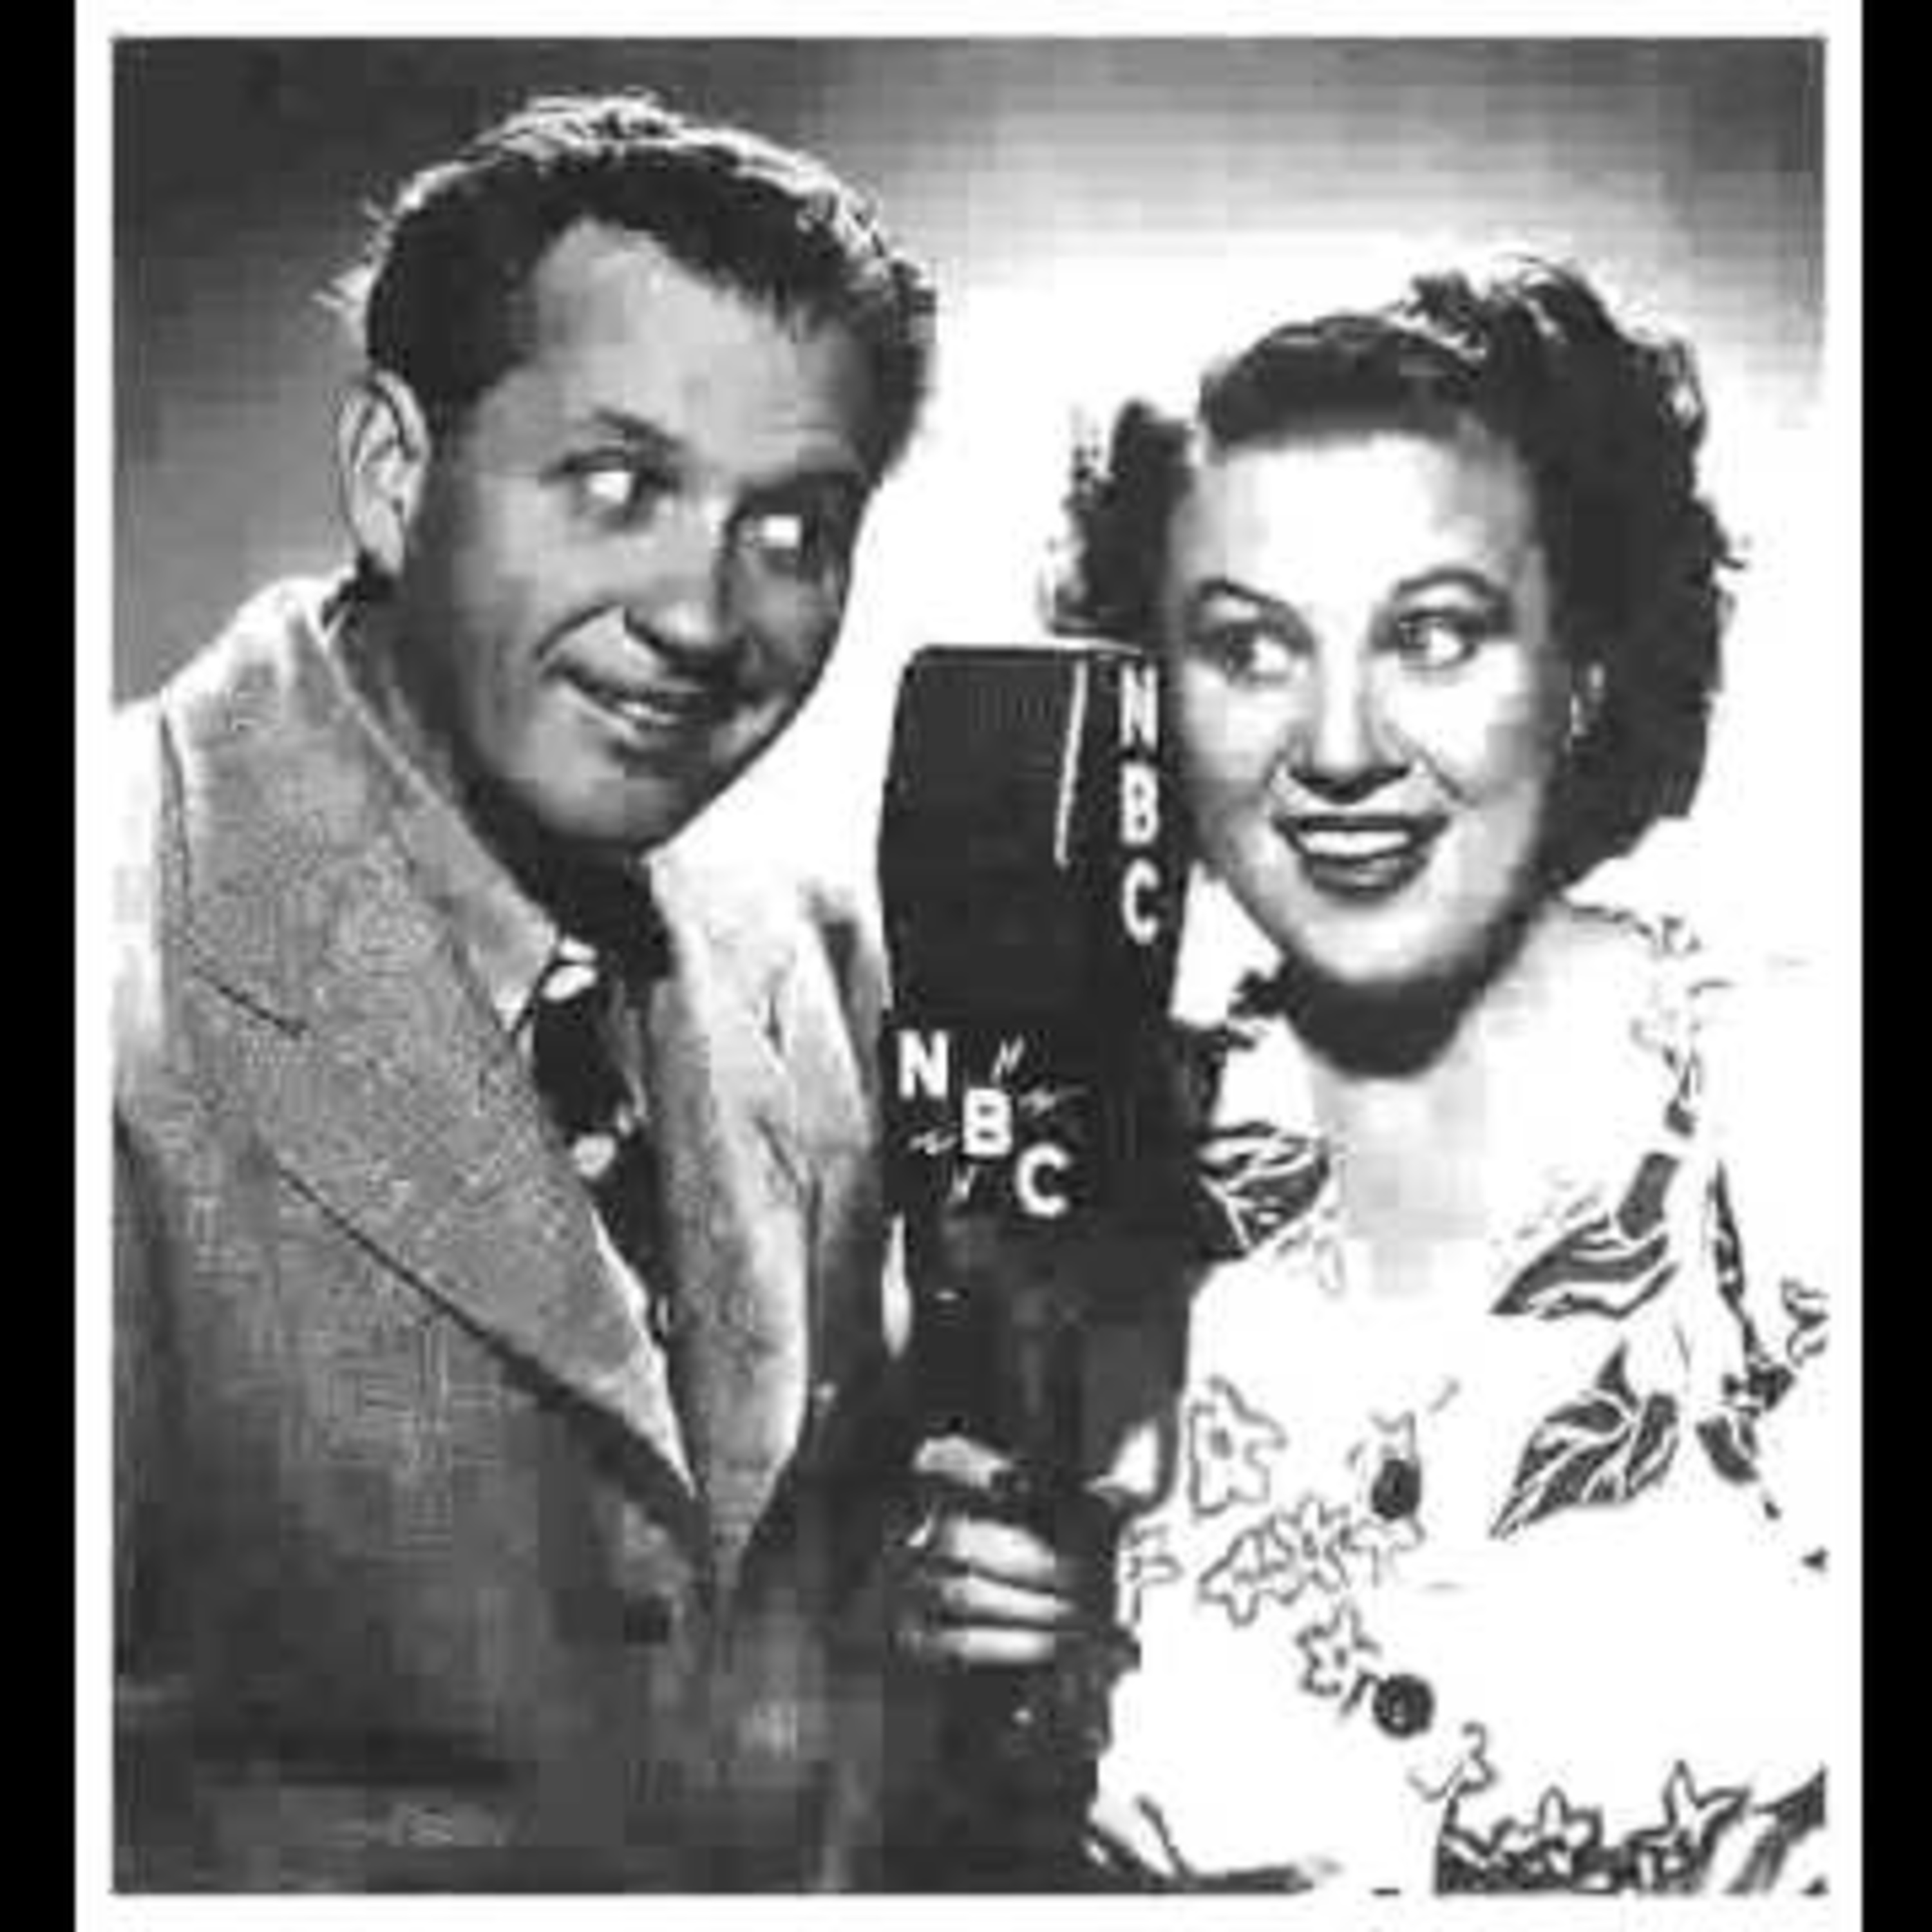 Fibber McGee & Molly - Valentine Candy - Home Movies